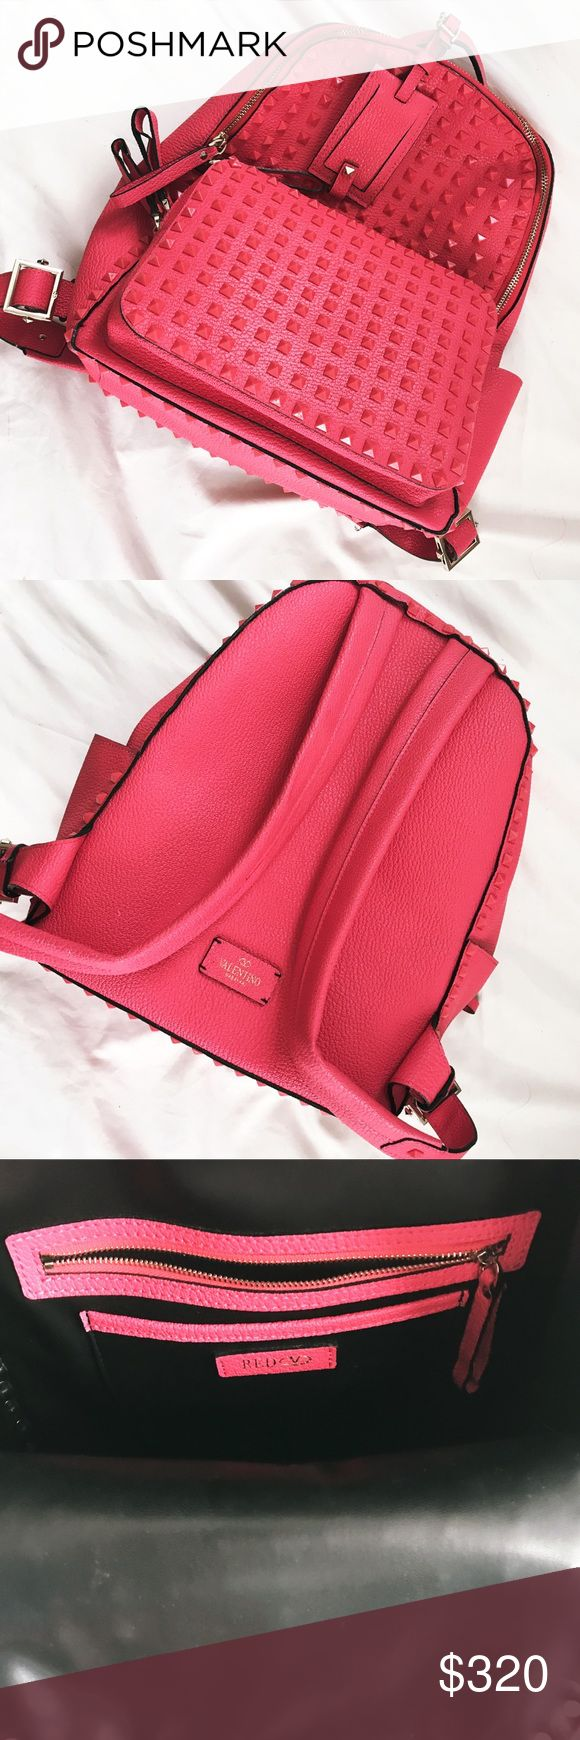 Valentino Studded Backpack Studded backpack in hot pink - this was a gift I never used it I don't know the origins of it. Looks very nice and appears to hold a lot. I have too many bags. Open to offers - price reflects authenticity because I don't know if it is or if it isn't. Valentino Bags Backpacks